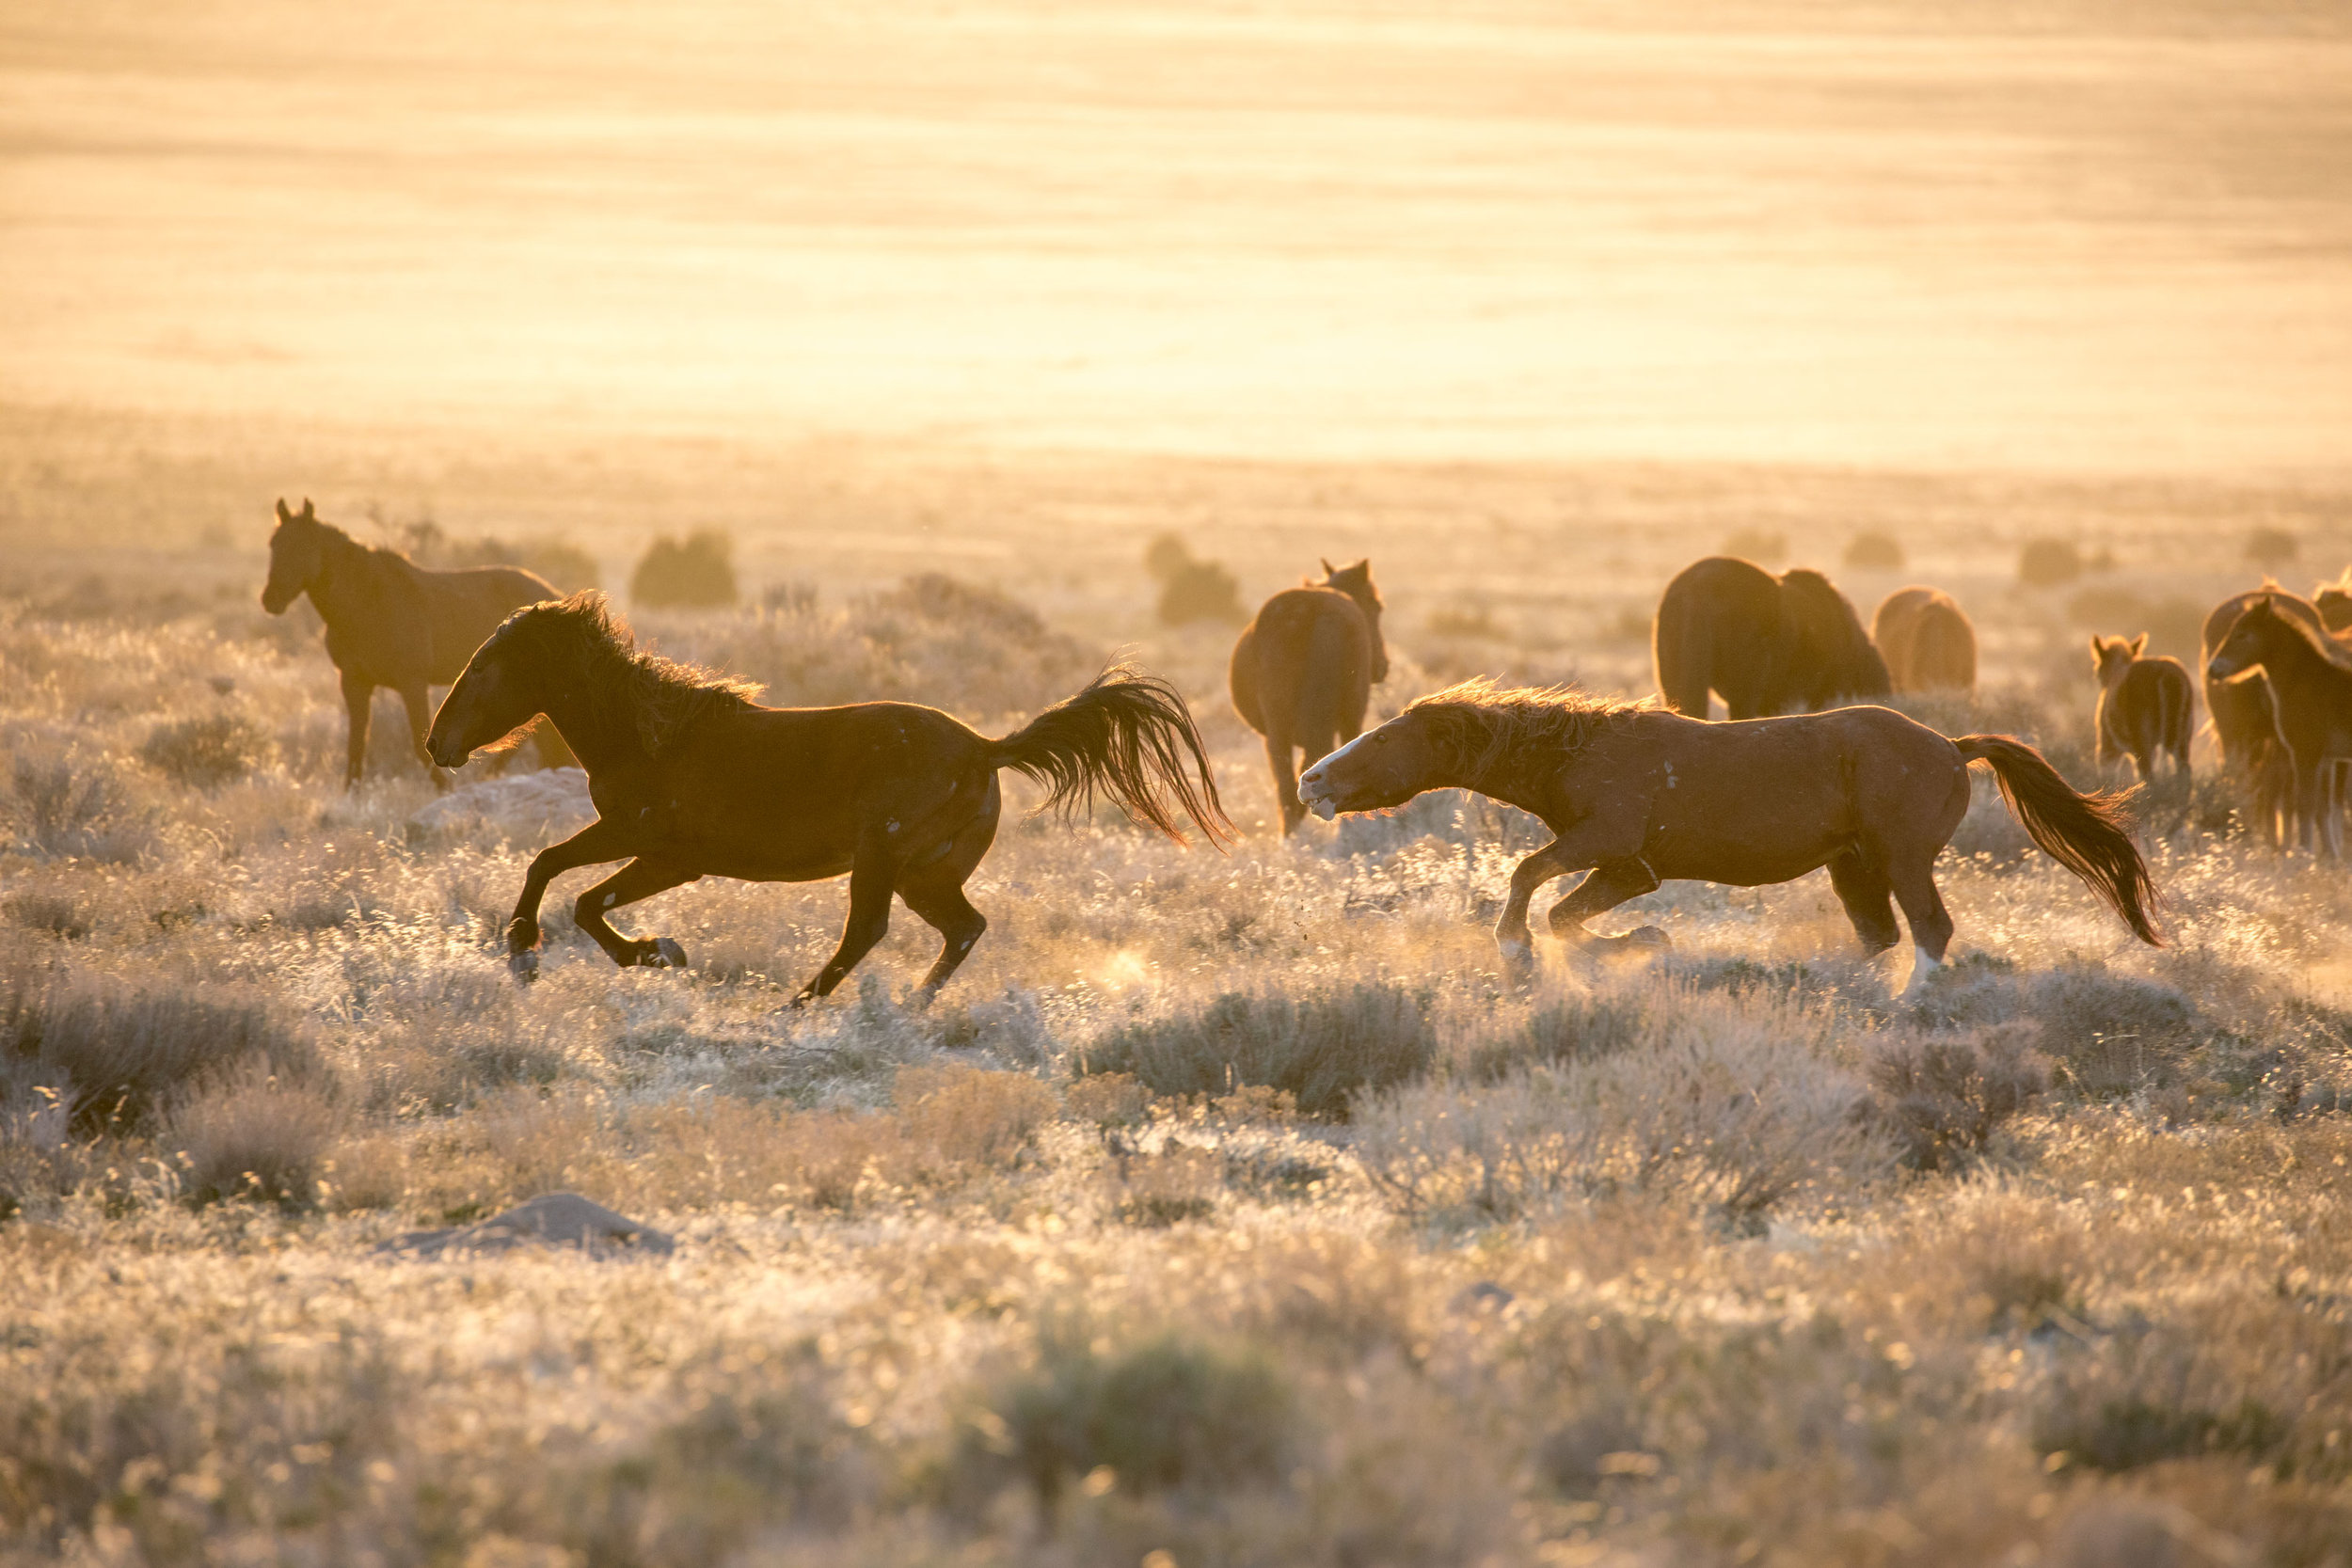 Chaos by the watering hole during sunset.